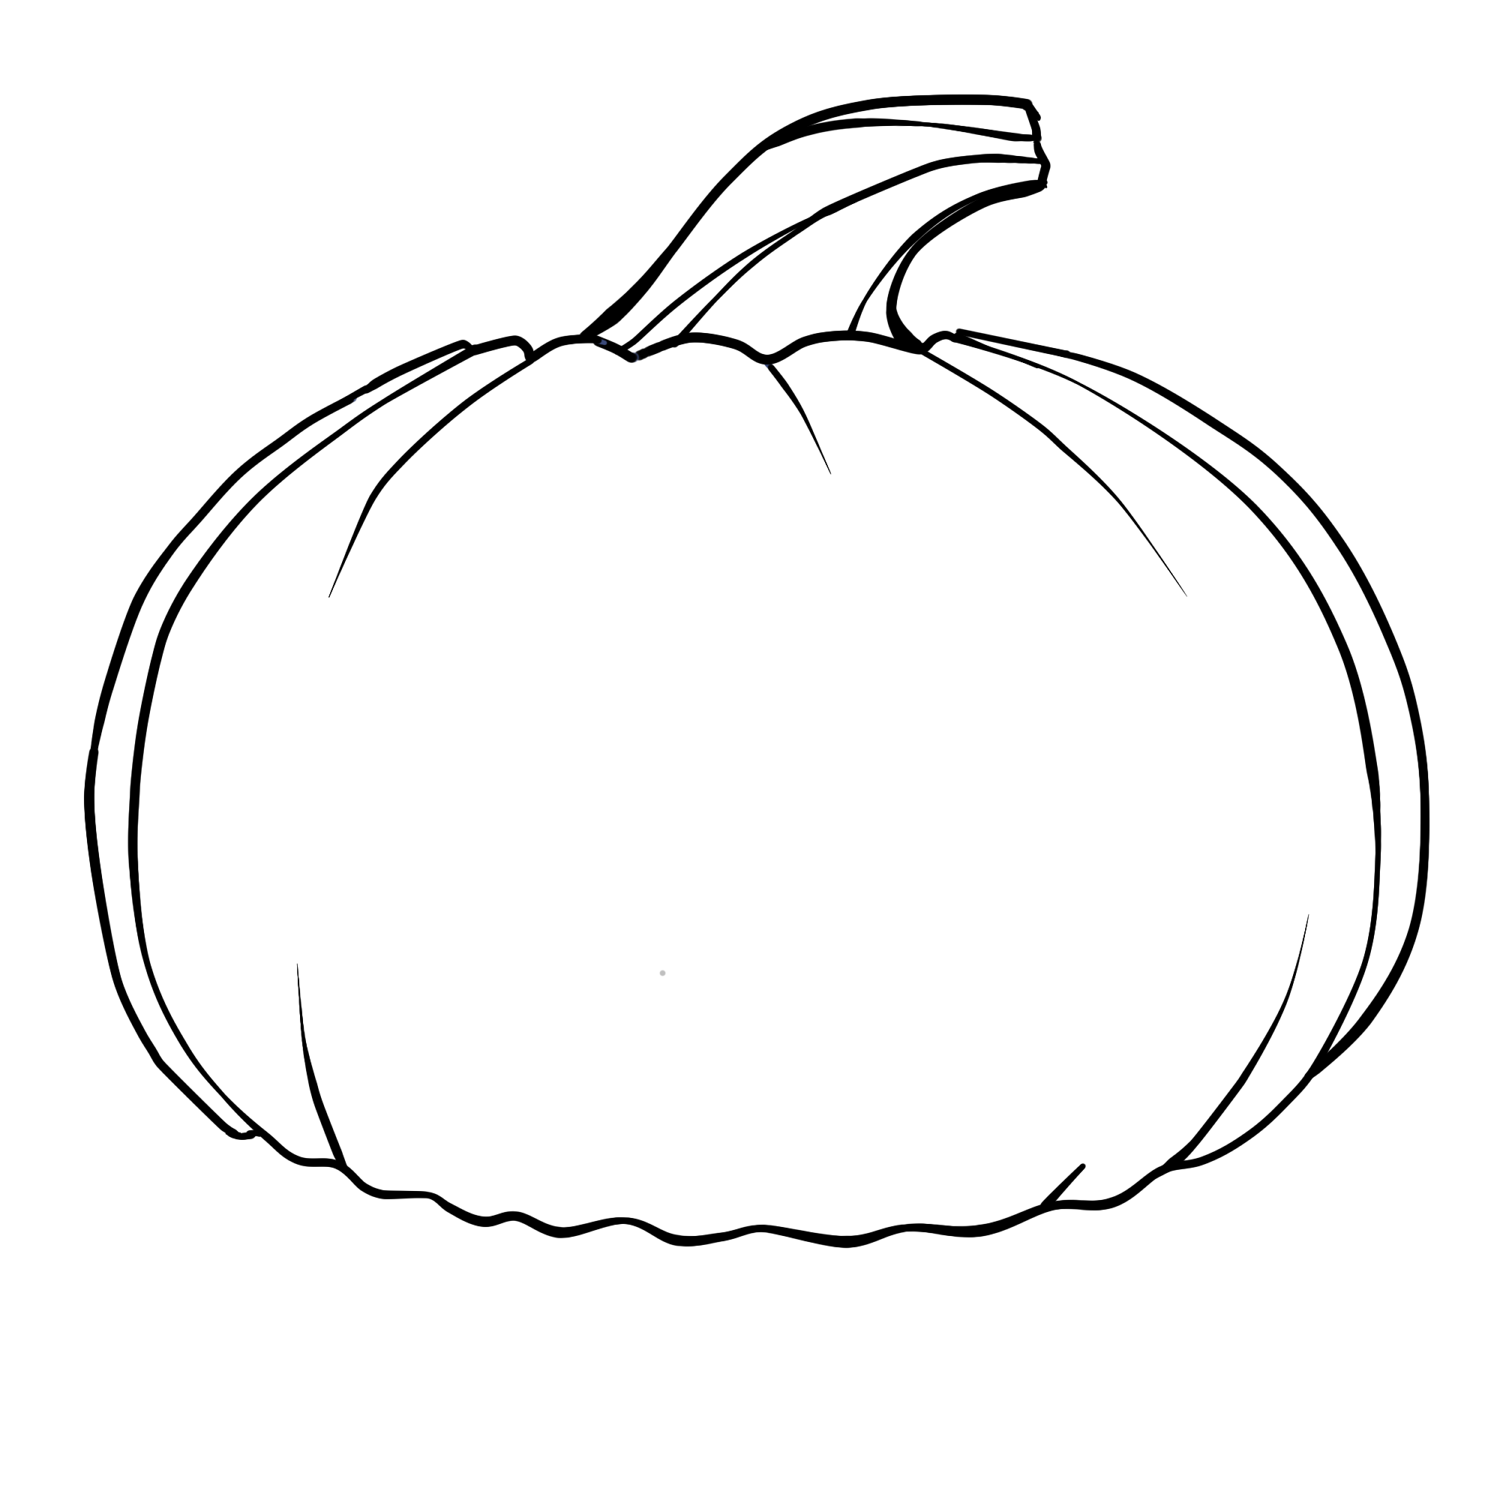 Pumpkin Coloring Page Free Printable Pumpkin Coloring Pages For Kids